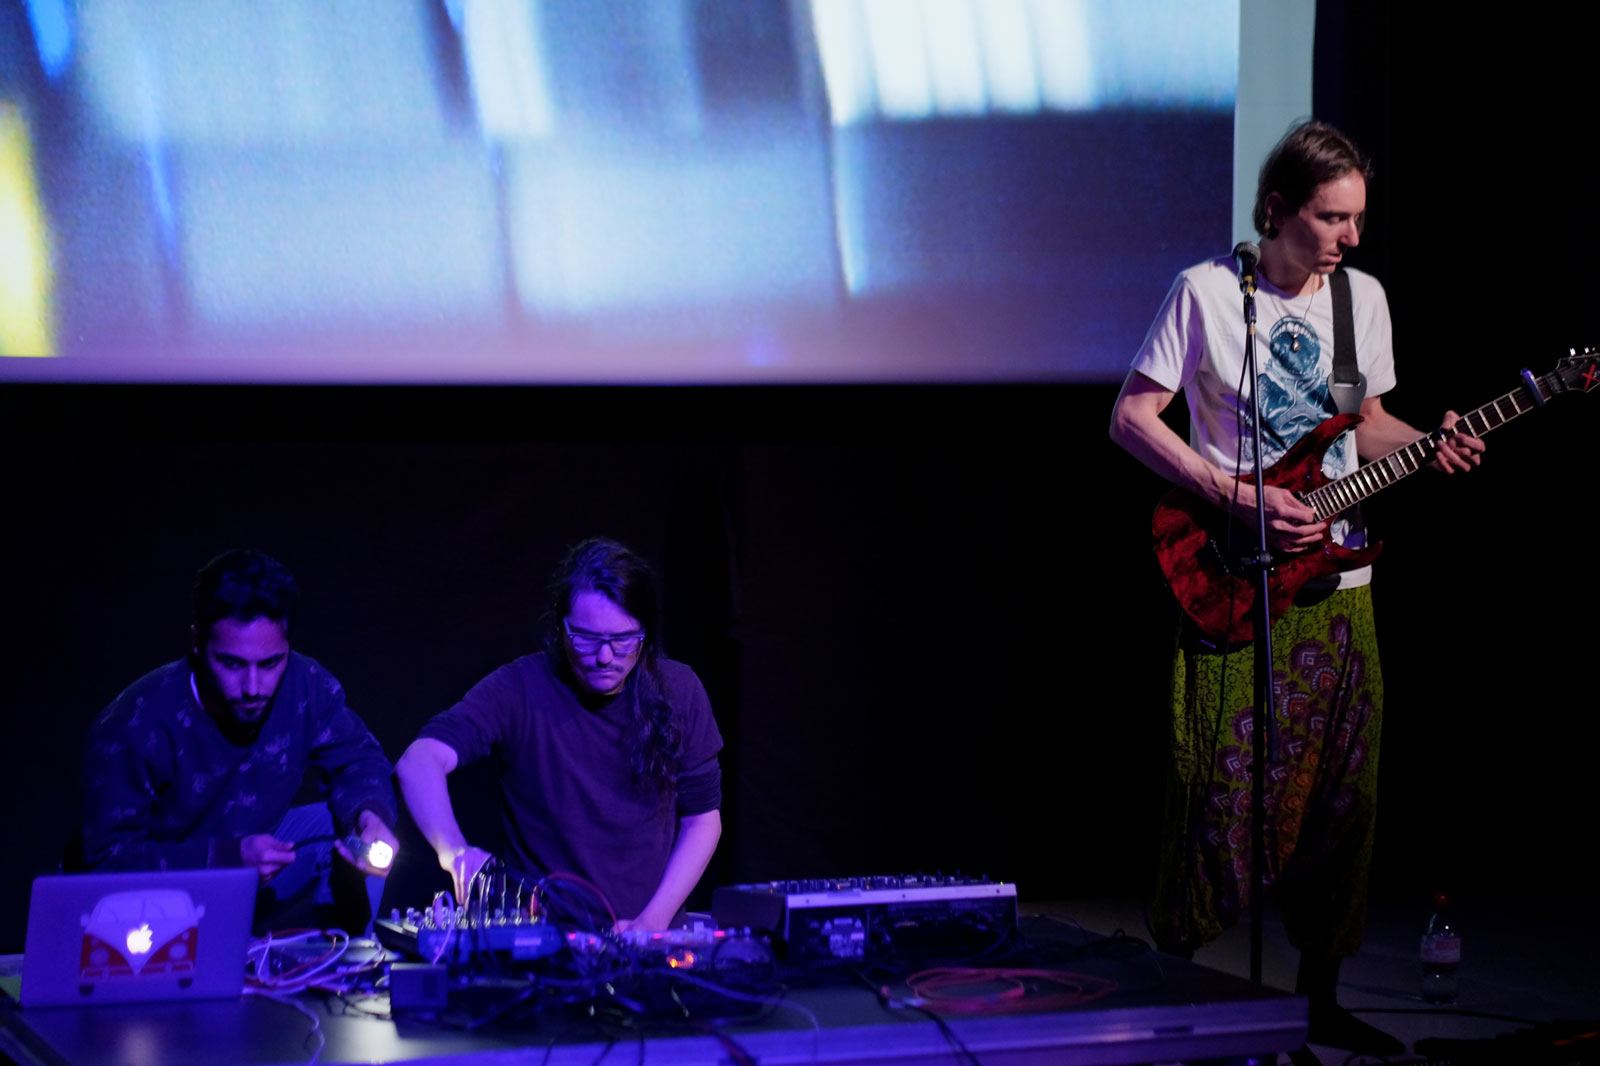 The ambient - electronic band Ansaritie performing, of which Unfold Stories' both members Lucio and Riccardo are a part of.